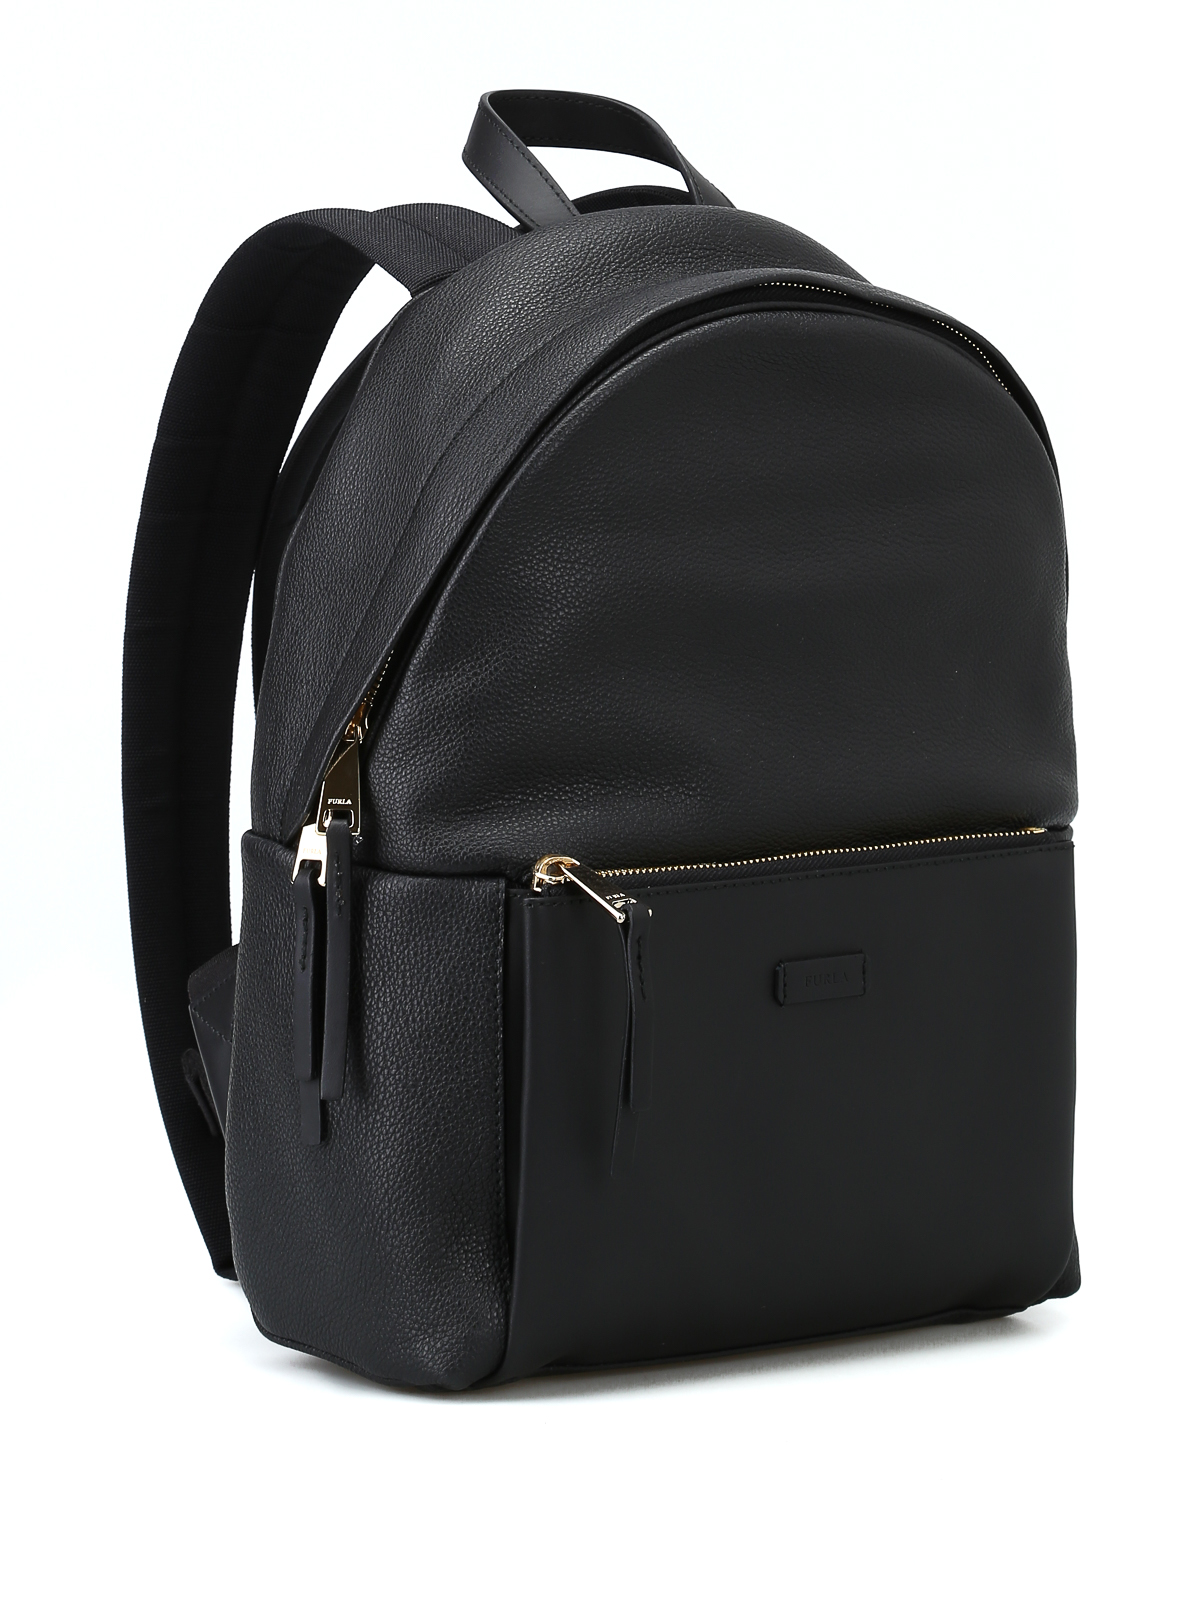 Furla Giudecca Small Dome Backpack Backpacks 981770 Onyx Authentic Online